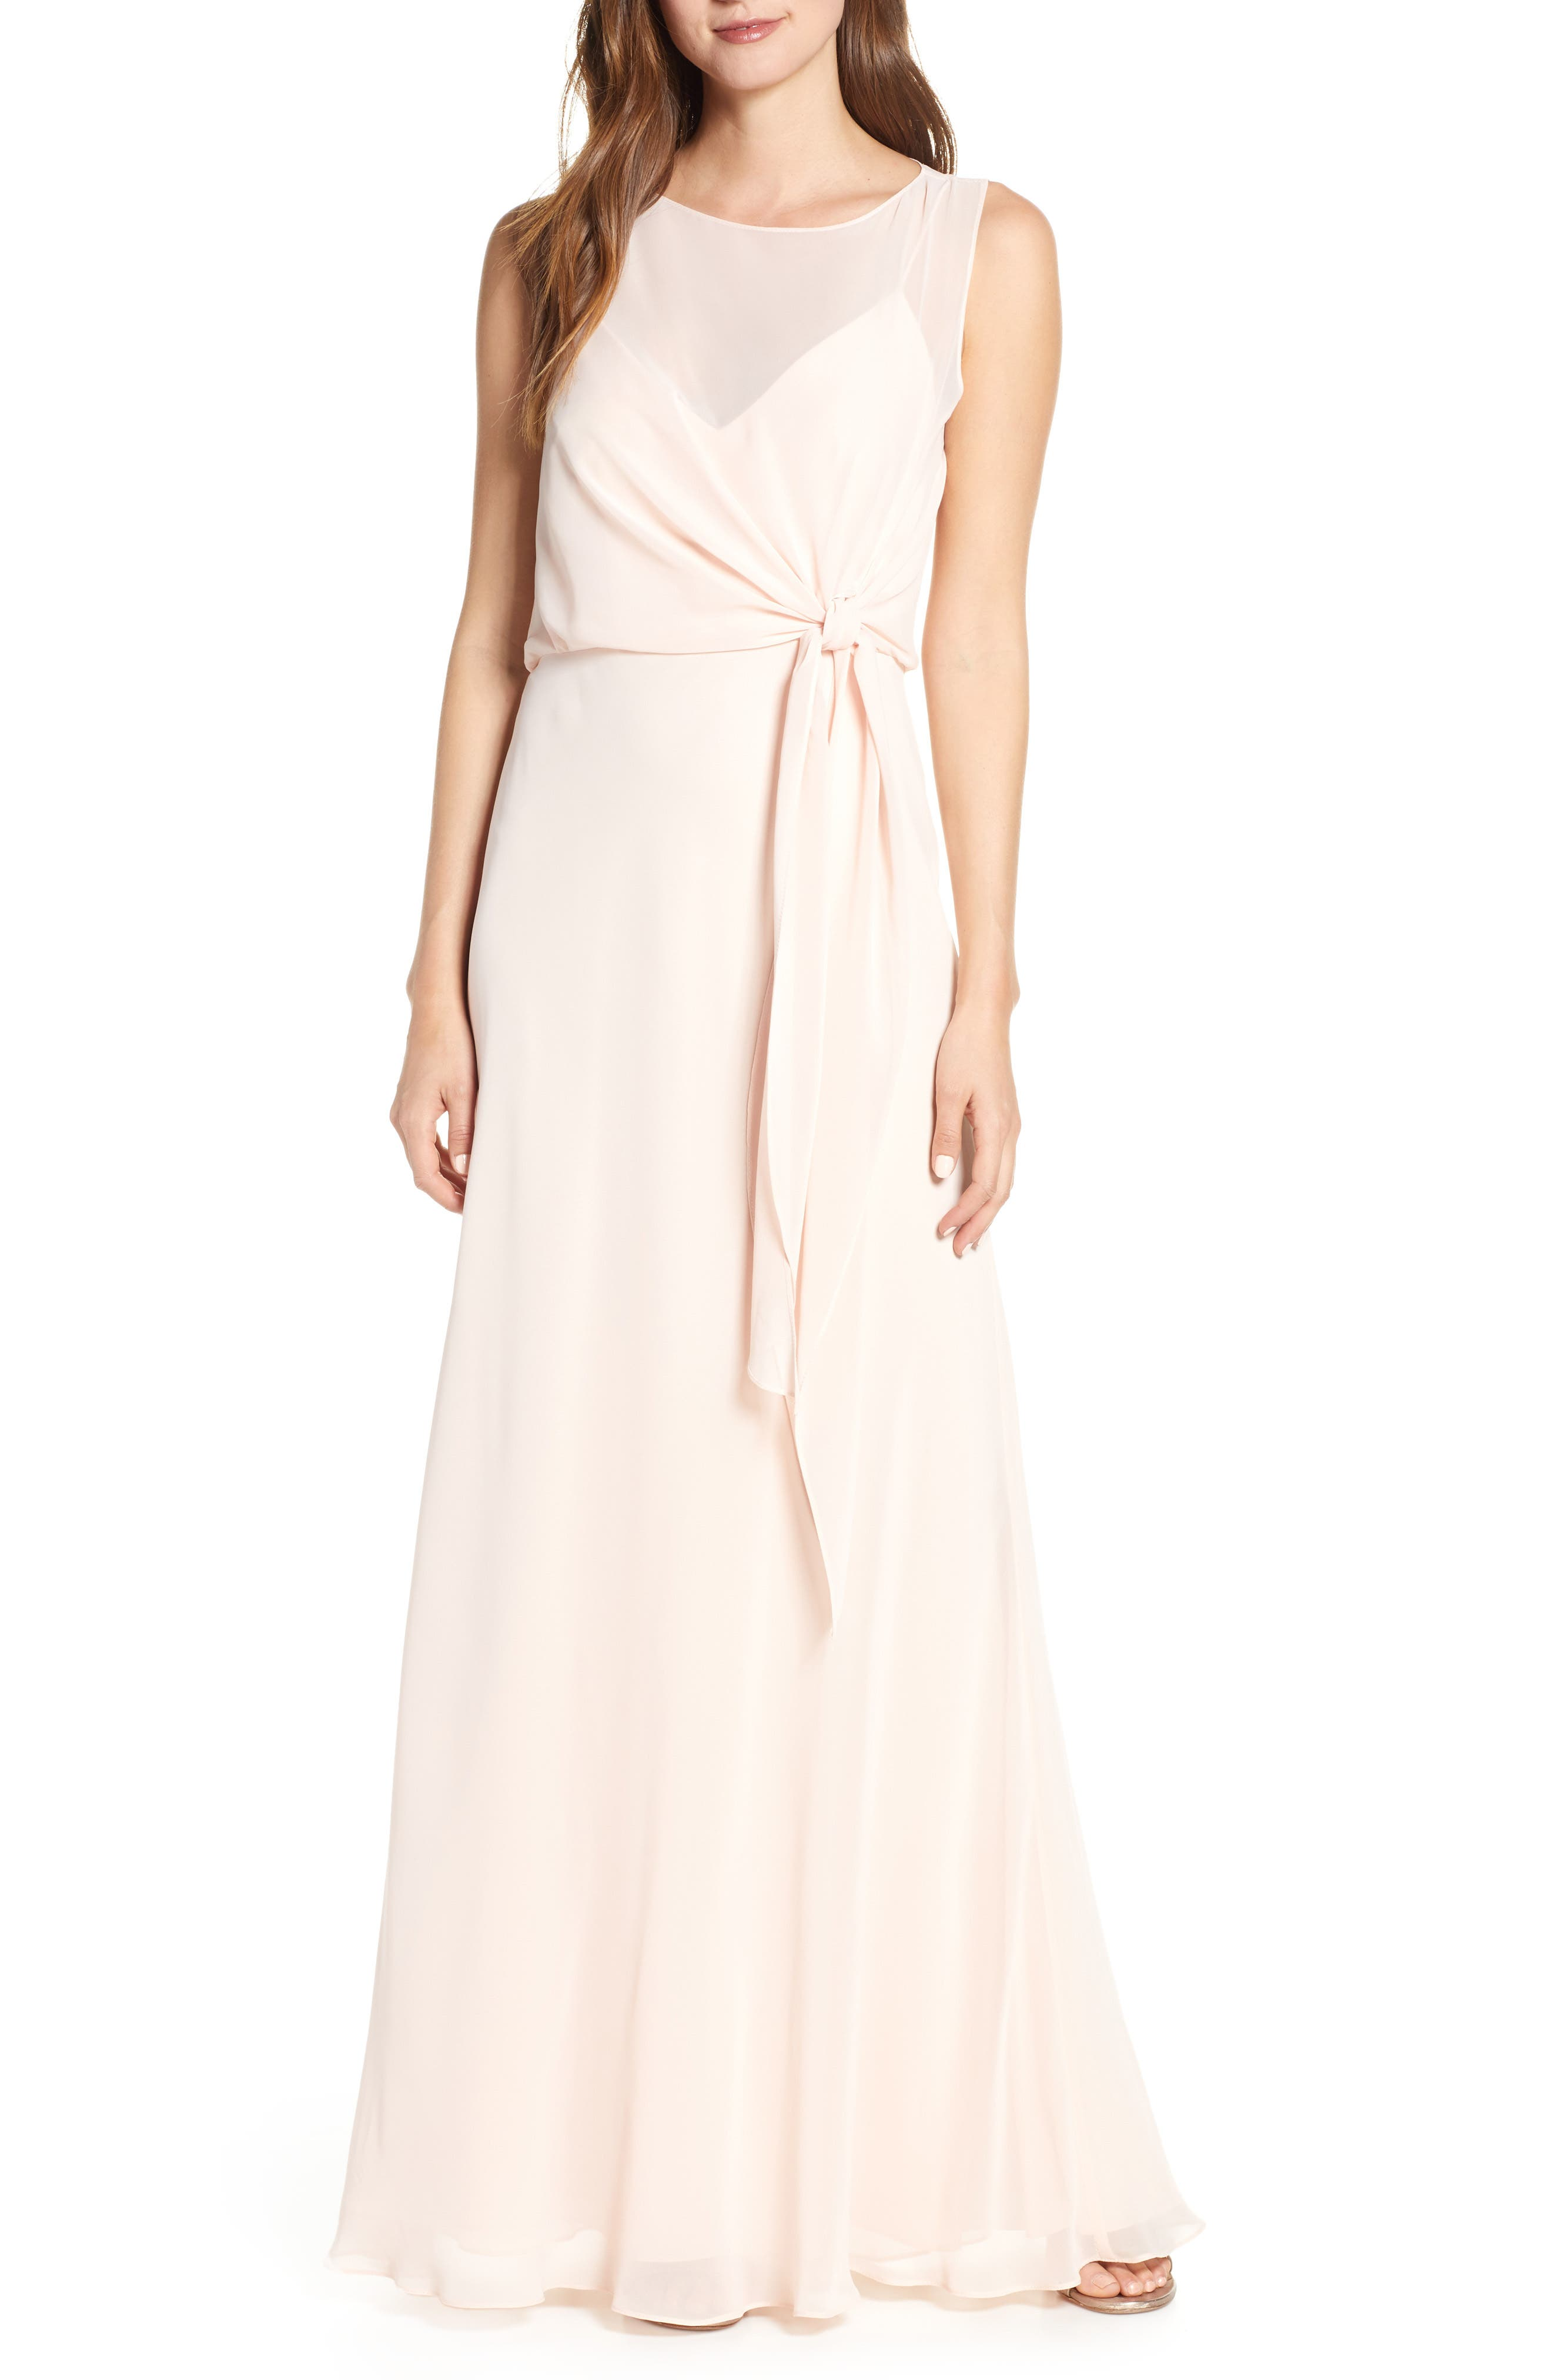 Jenny Yoo Chiffon Overlay Evening Dress, Pink